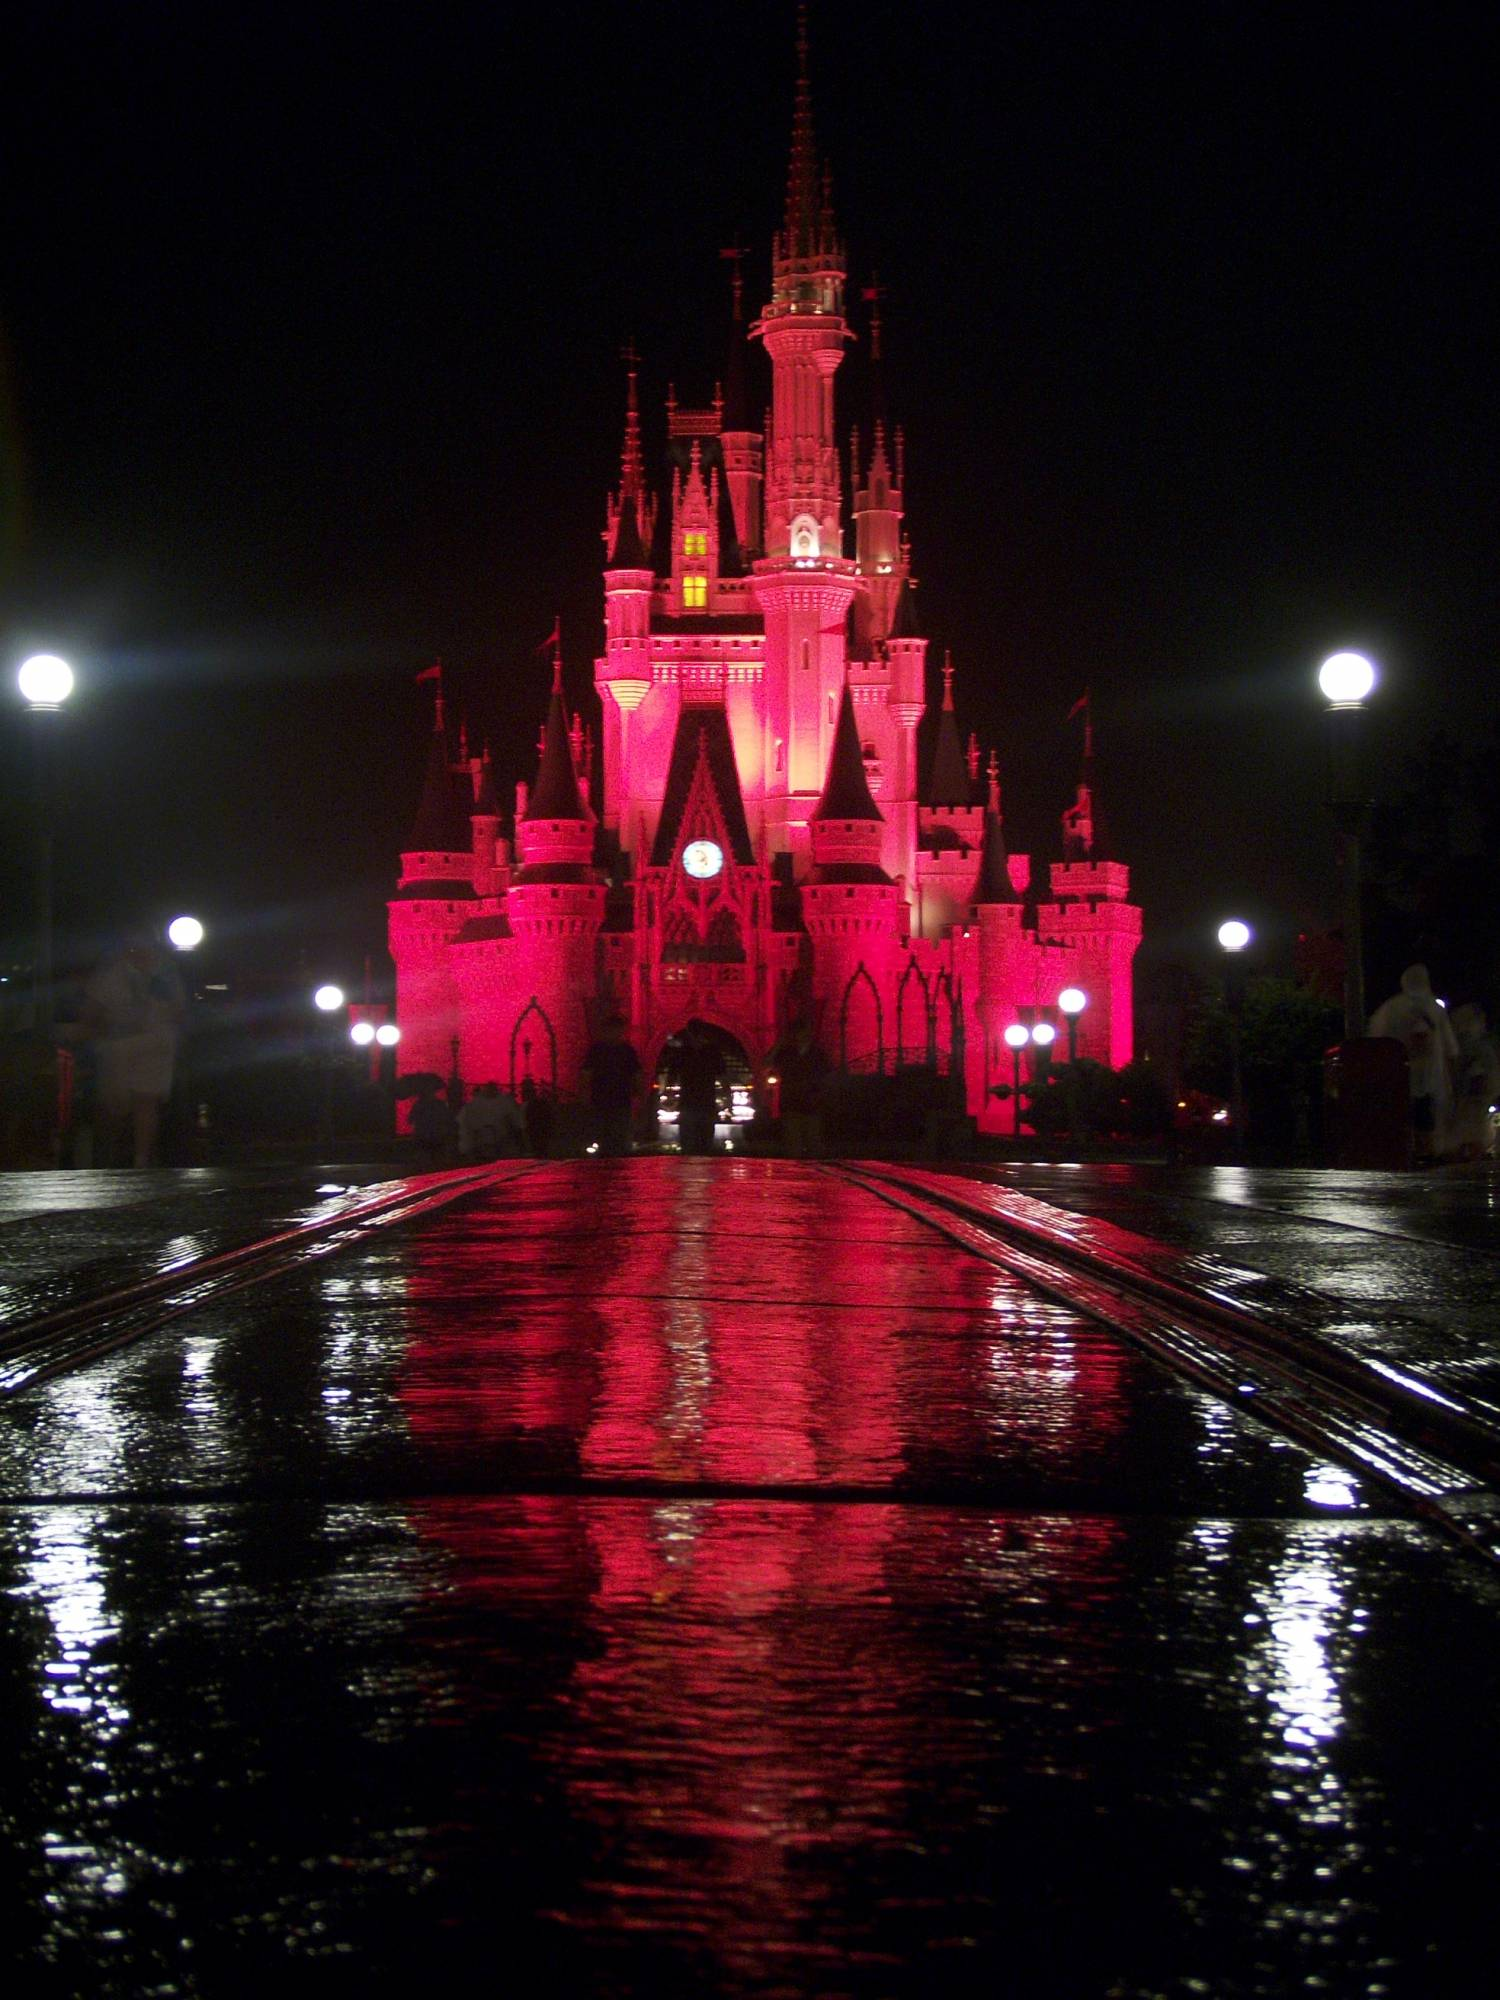 Magic Kingdom - The Castle after a day of rain photo